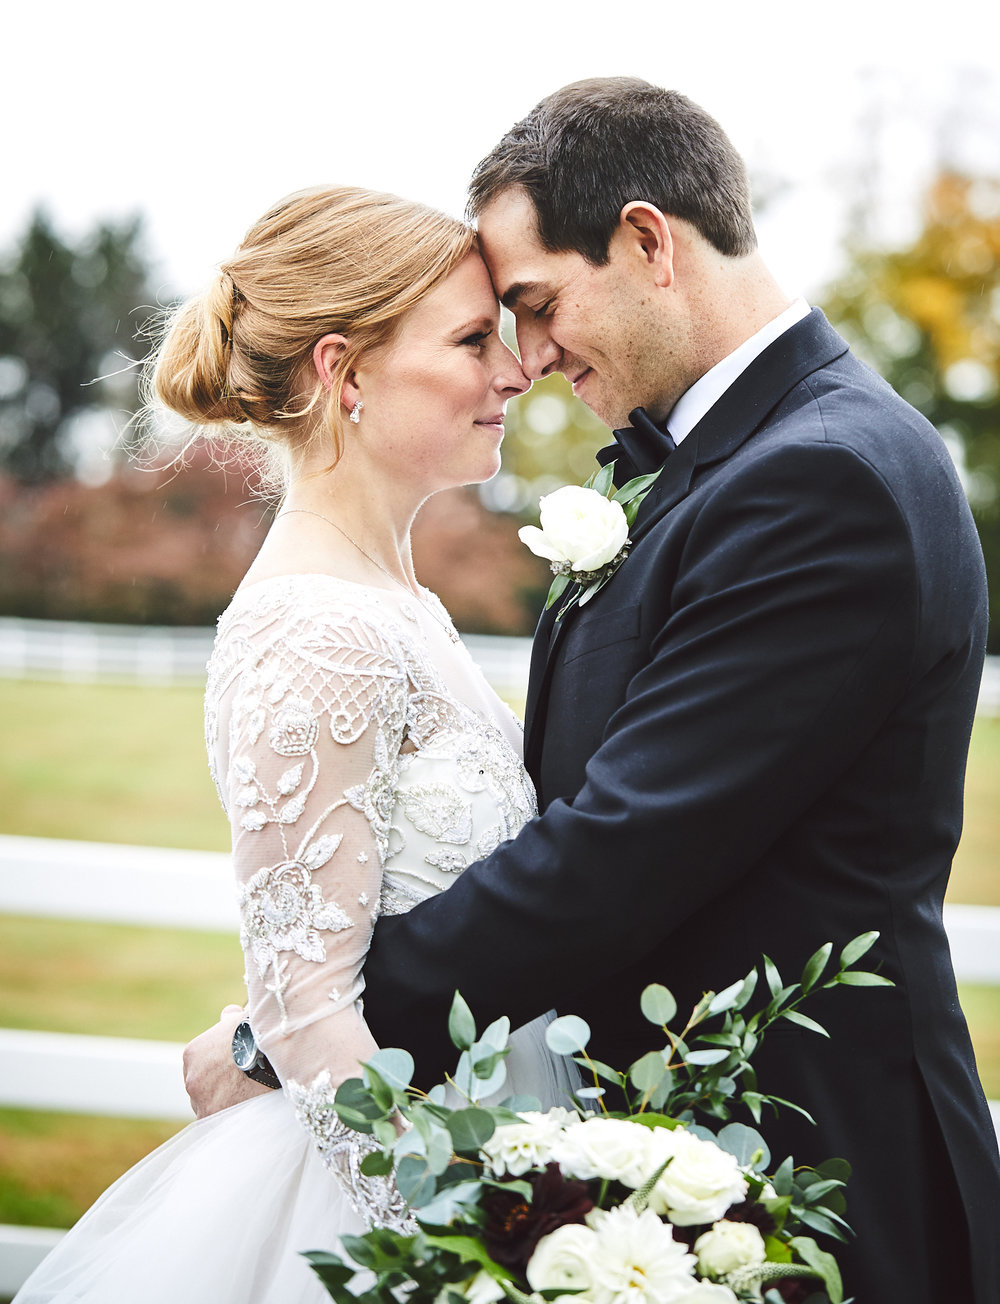 181027_TheRylandInnFallWeddingPhotography_NJWeddingPhotographer_By_BriJohnsonWeddings_0058.jpg